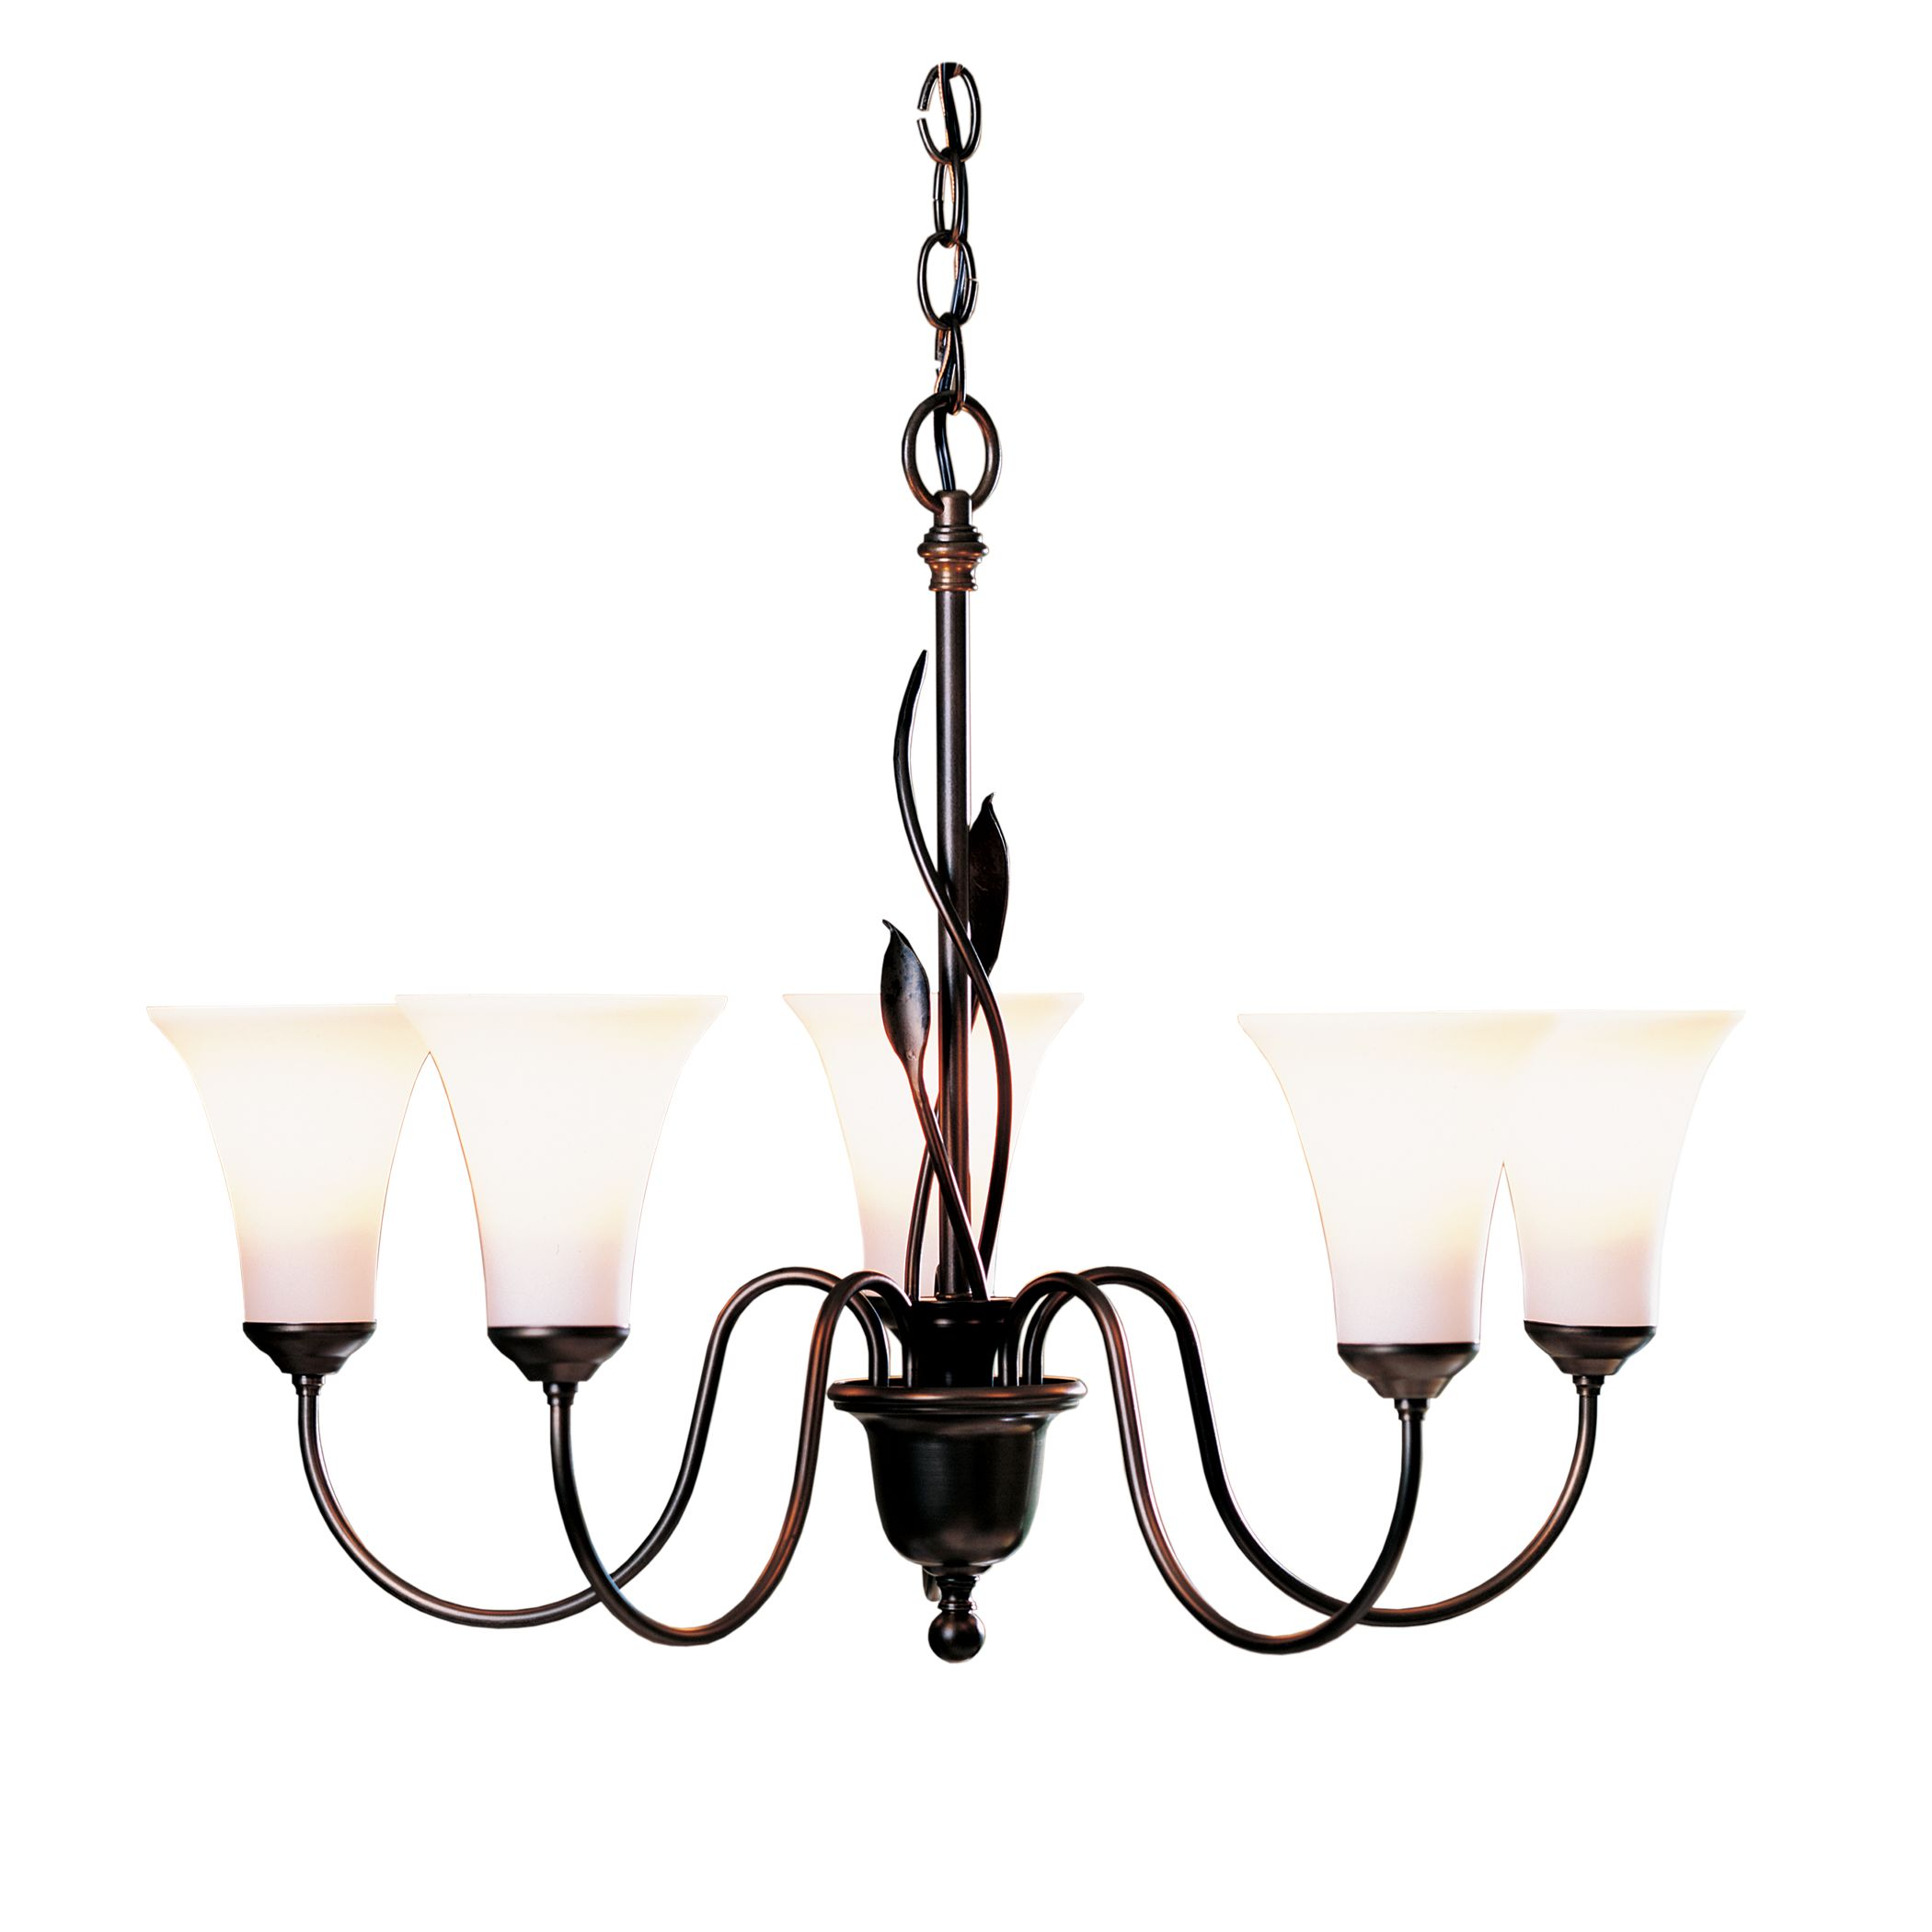 Hubbardton Forge Double Cirque Large: Sweeping Taper 3 Arm Chandelier